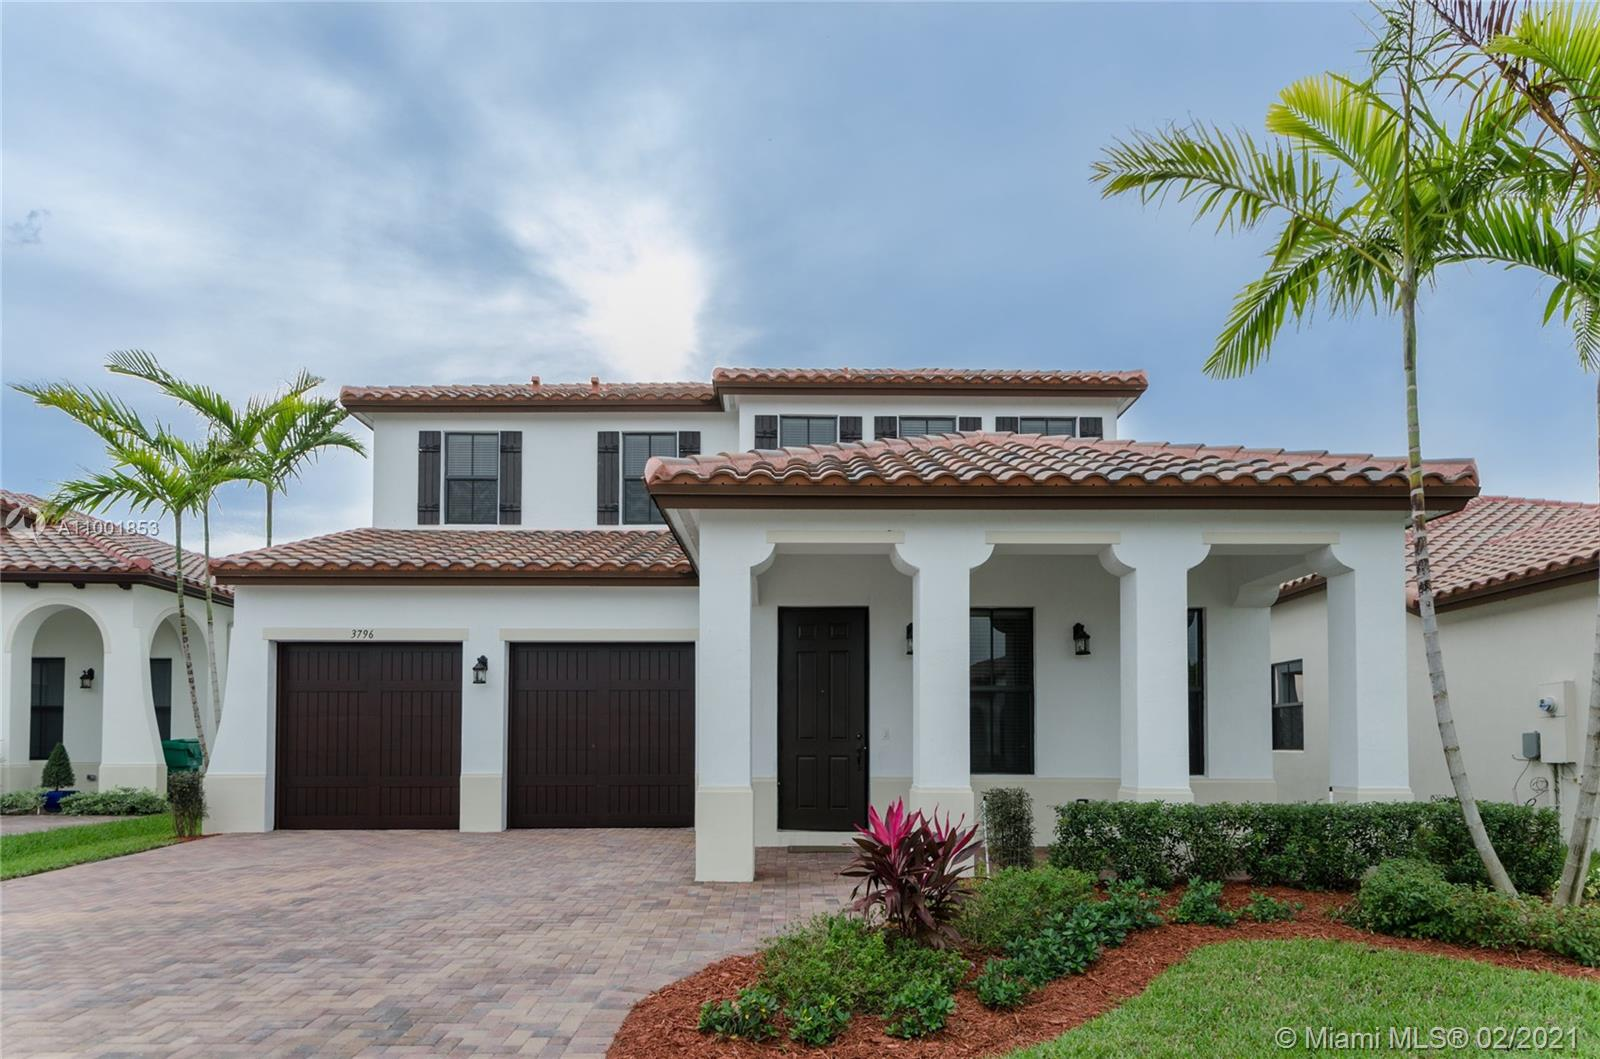 WELCOME TO COOPER CITY'S MOST SOUGHT AFTER GATED-COMMUNITY! THIS WATERFRONT HOME OFFERS 4 BEDROOMS / 3 BATHS WITH AN OPEN FLOORPLAN INCLUDING HIGHLY UPGRADED KITCHEN AND OVERSIZED MASTER SUITE. ADDITIONAL FEATURES INCLUDE HURRICANE IMPACT WINDOWS, 2 CAR GARAGE, AND GORGEOUS WATERVIEWS. THE COMMUNITY OF MONTERRA OFFERS RESORT STYLE AMENITIES INCLUDING TENNIS & BASKETBALL COURTS, FITNESS CENTER, TOT LOT AND DOG PARK. A+ RATED SCHOOLS, JUST MINUTES FROM THE AIRPORT AND MAJOR HIGHWAYS. PRICE IS FIRM, NOT CONTINGENT ON APPRAISAL. SHOWINGS BEGIN 02/27/2021